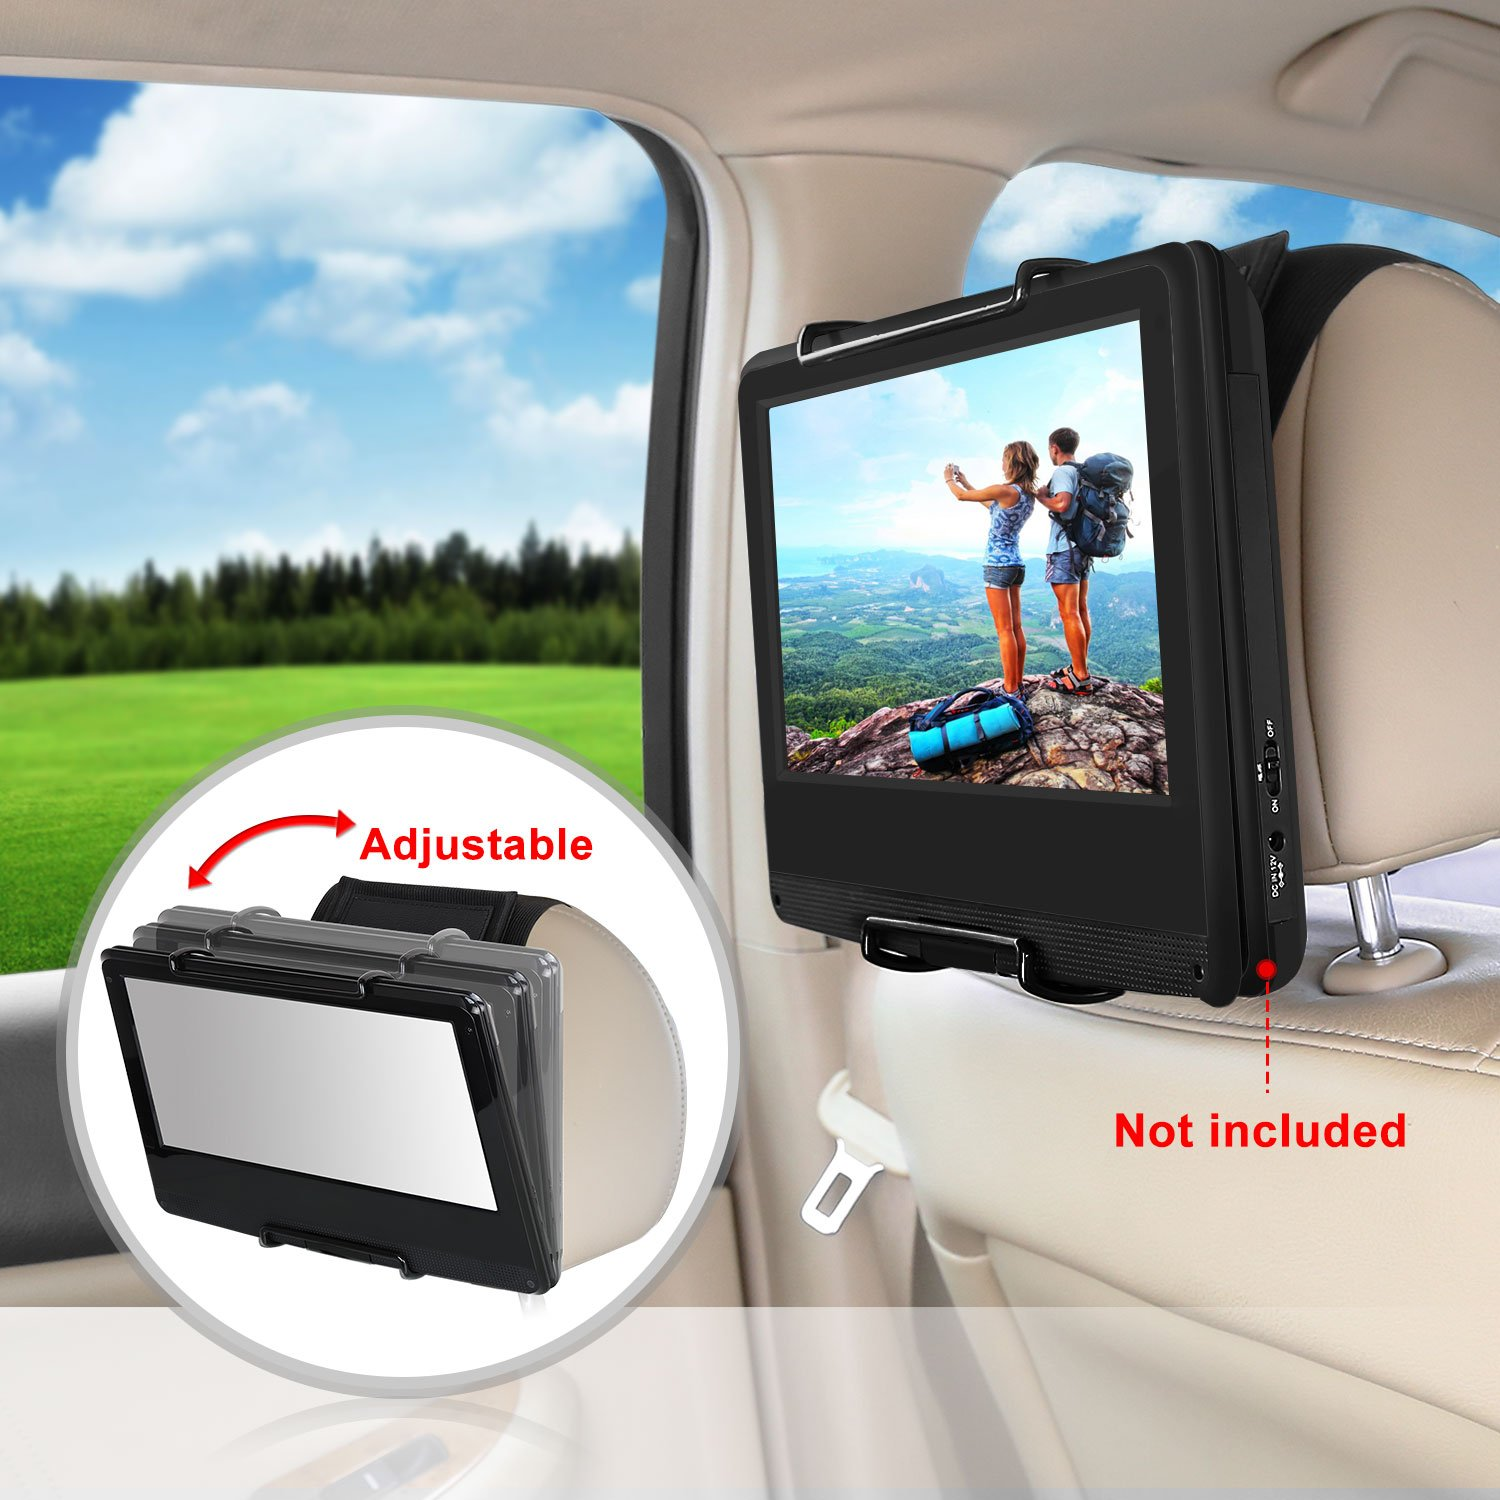 CUTRIP Car Headrest Mount Holder for CUTRIP 10.1 inch Portable Blu-ray Player and Fit for 10.1-12.5 inch Swivel Screen Portable DVD Players (DVD Player Thickness Requires about 35-42MM)